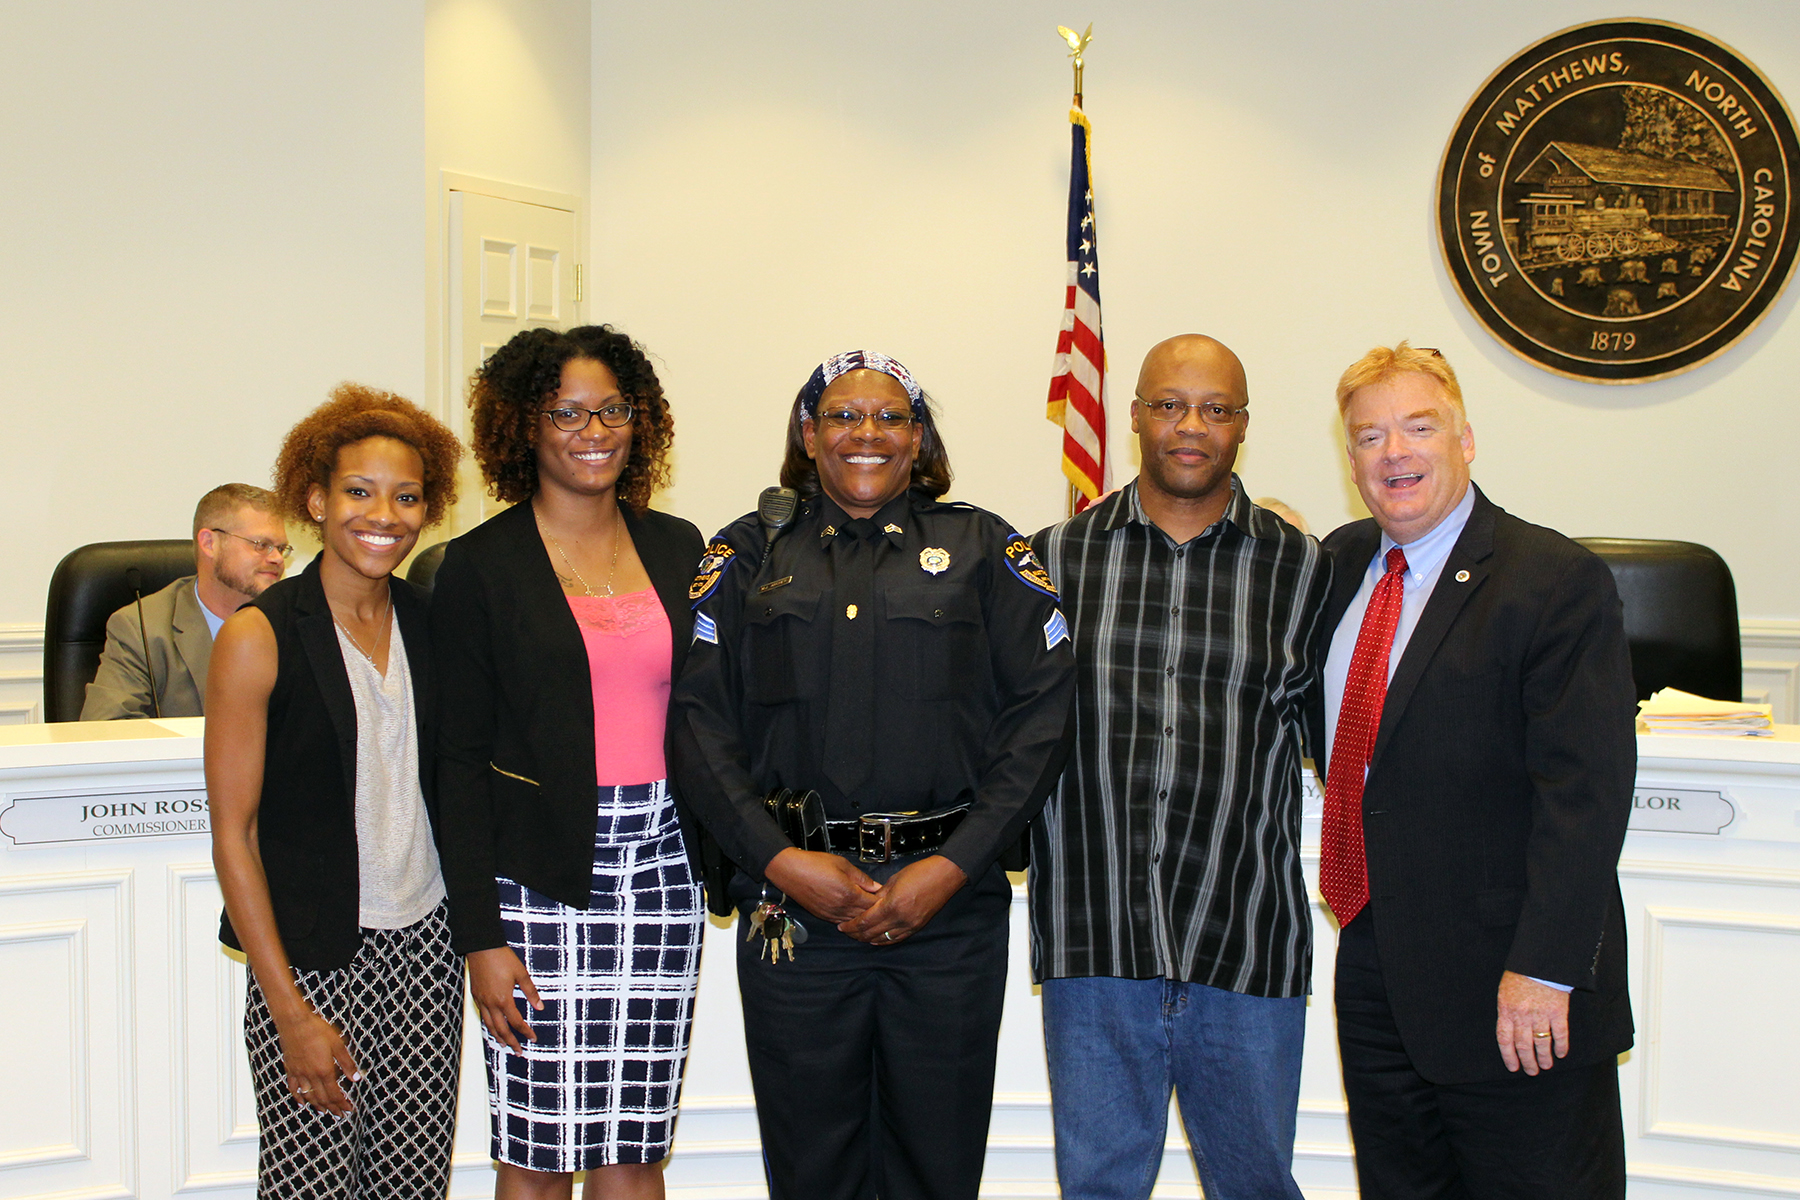 Sgt. Archer was recognized for her promotion during a 2017 Board of Commissioners meeting.